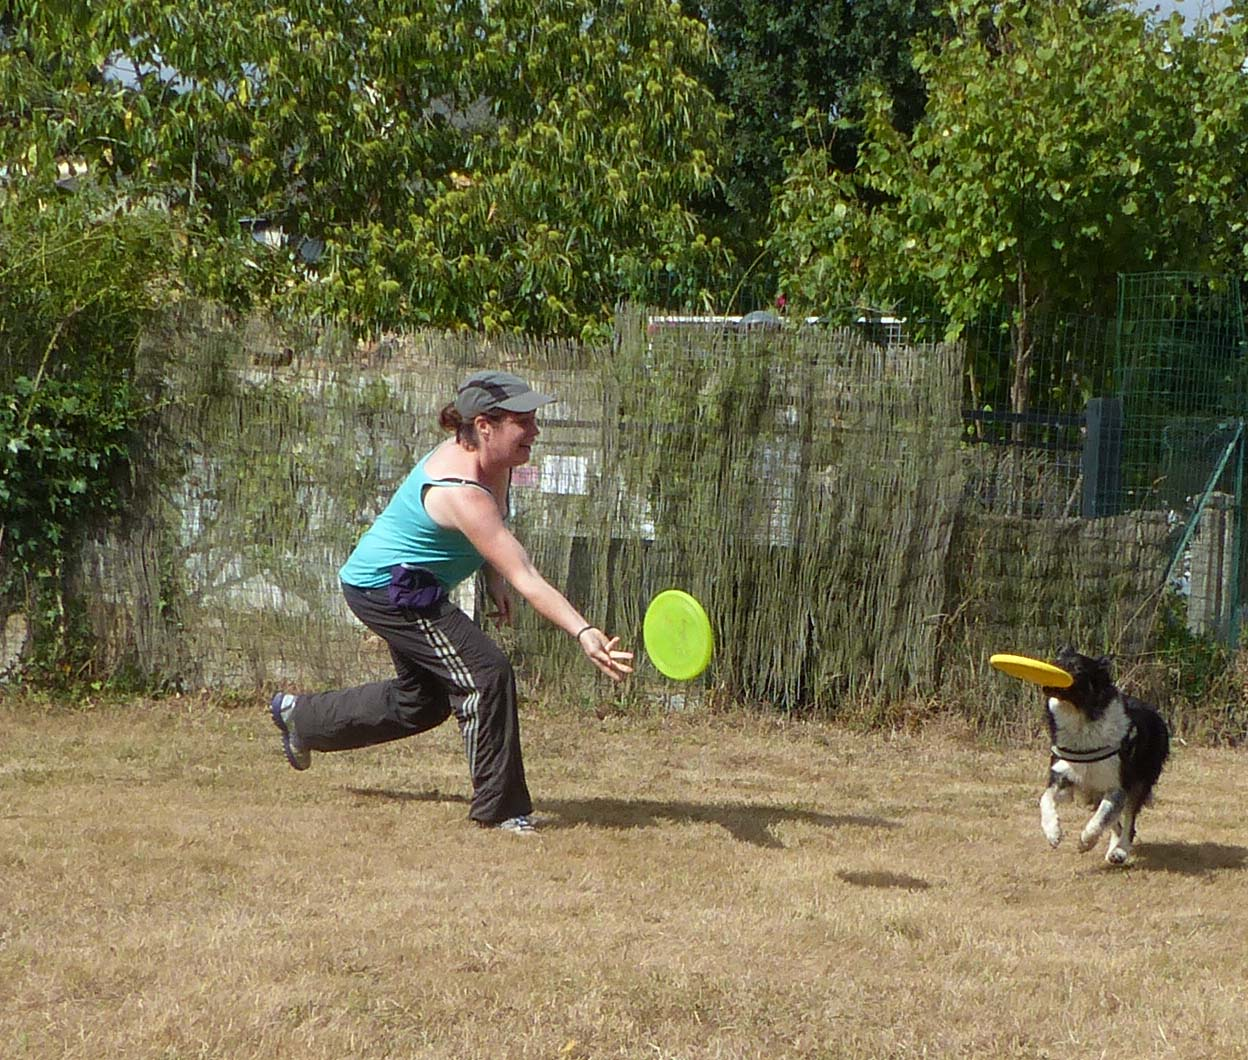 frisbee / ars canis image